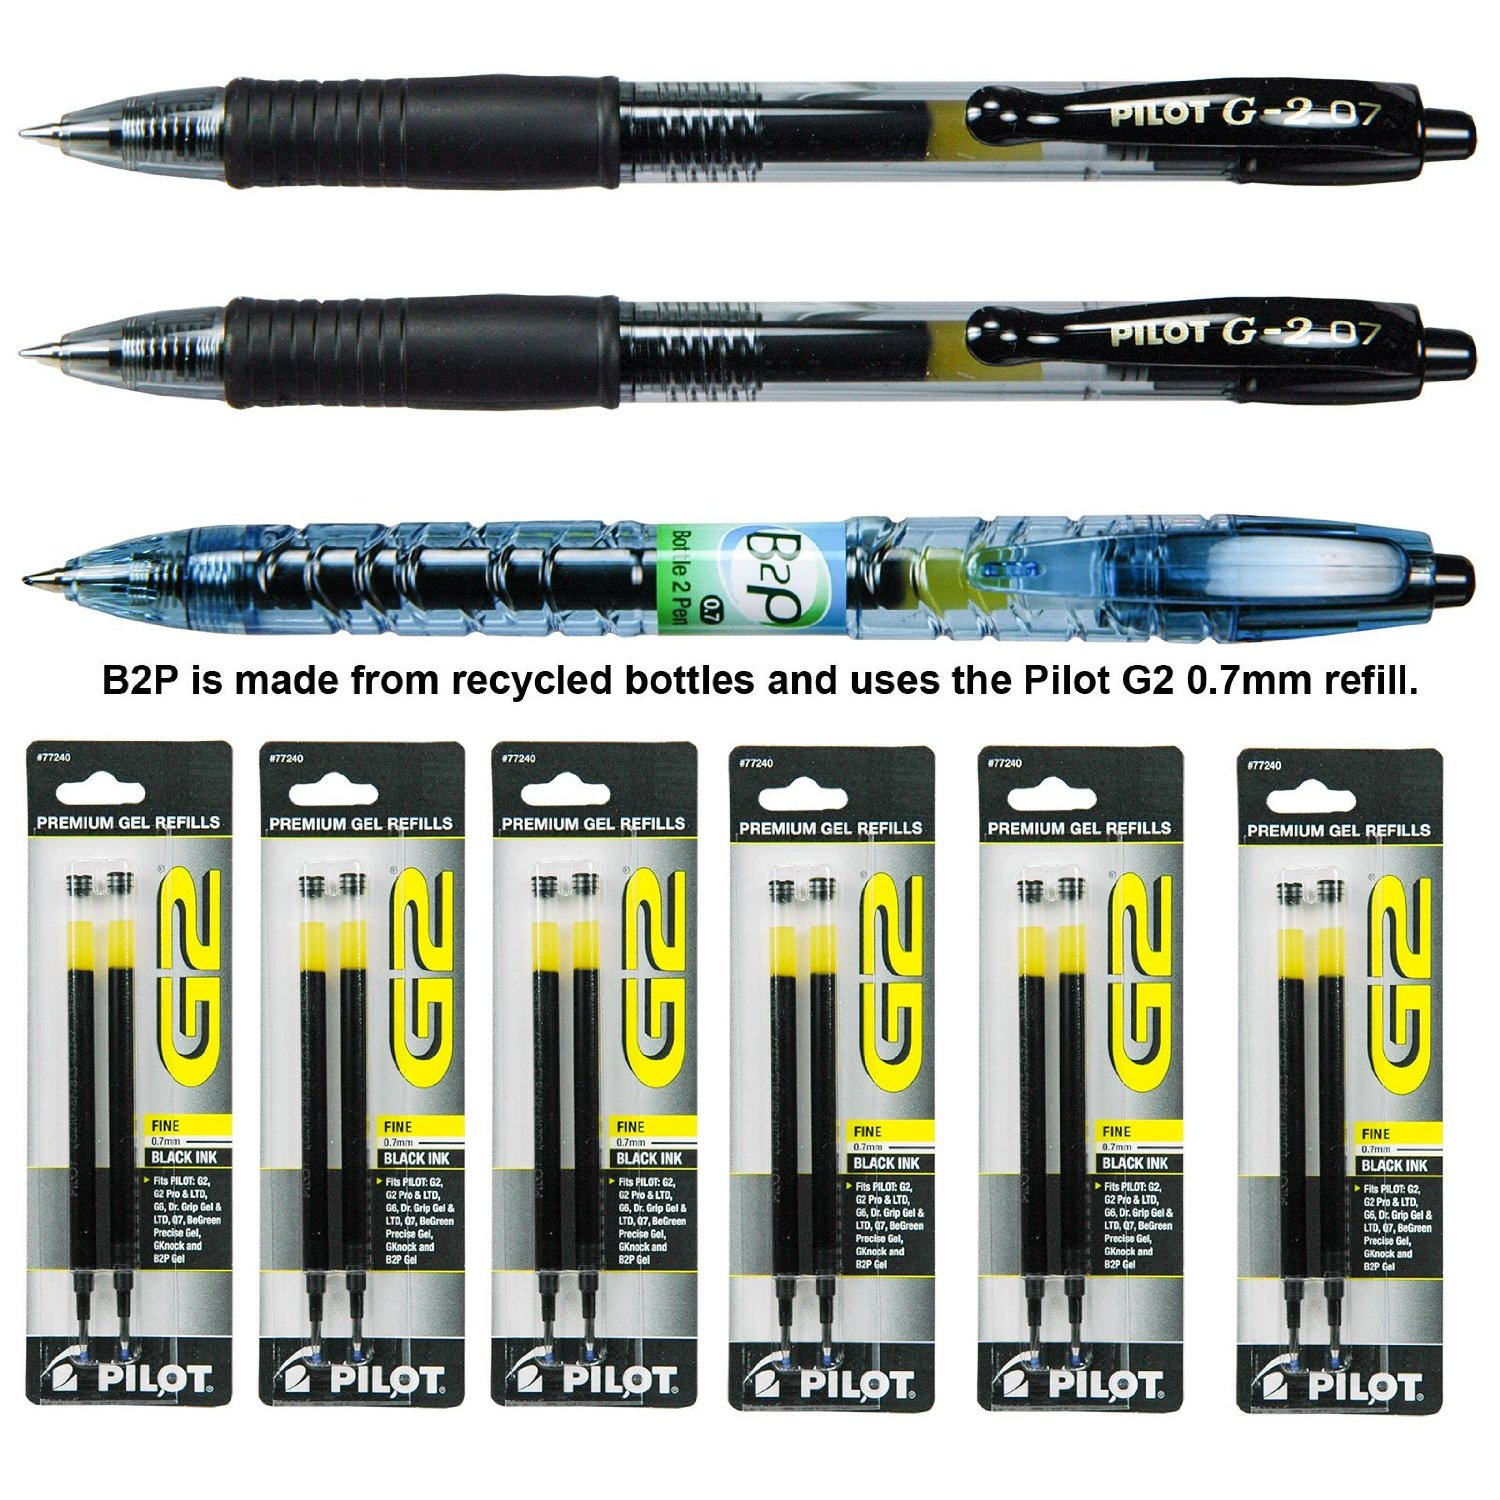 Pilot G2 07 Pen with Refills, 0.7mm Black Gel Ink, 9 Piece Assortment Pack